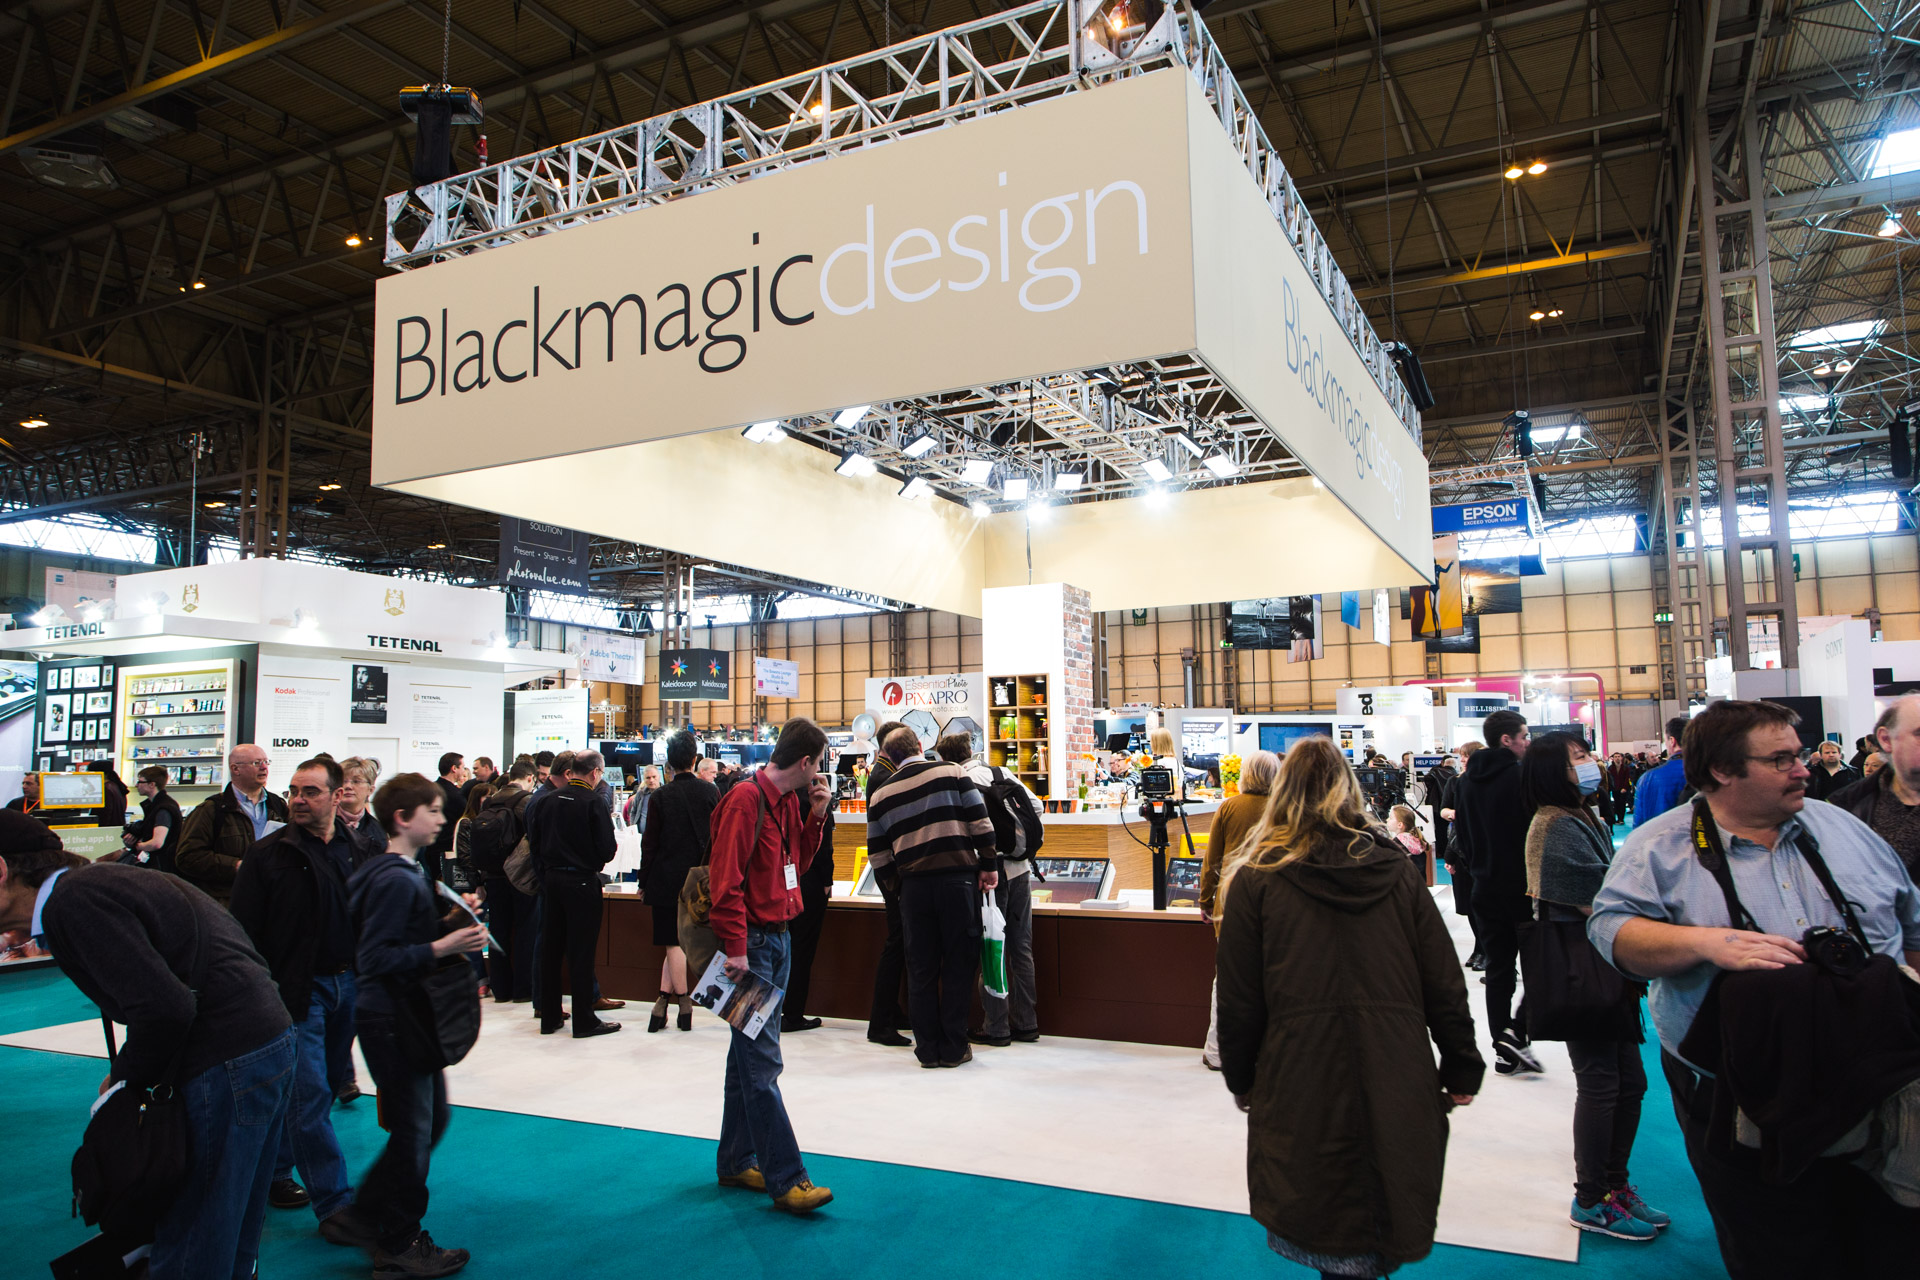 The stand for video camera manufacturerBlackmagic Design.